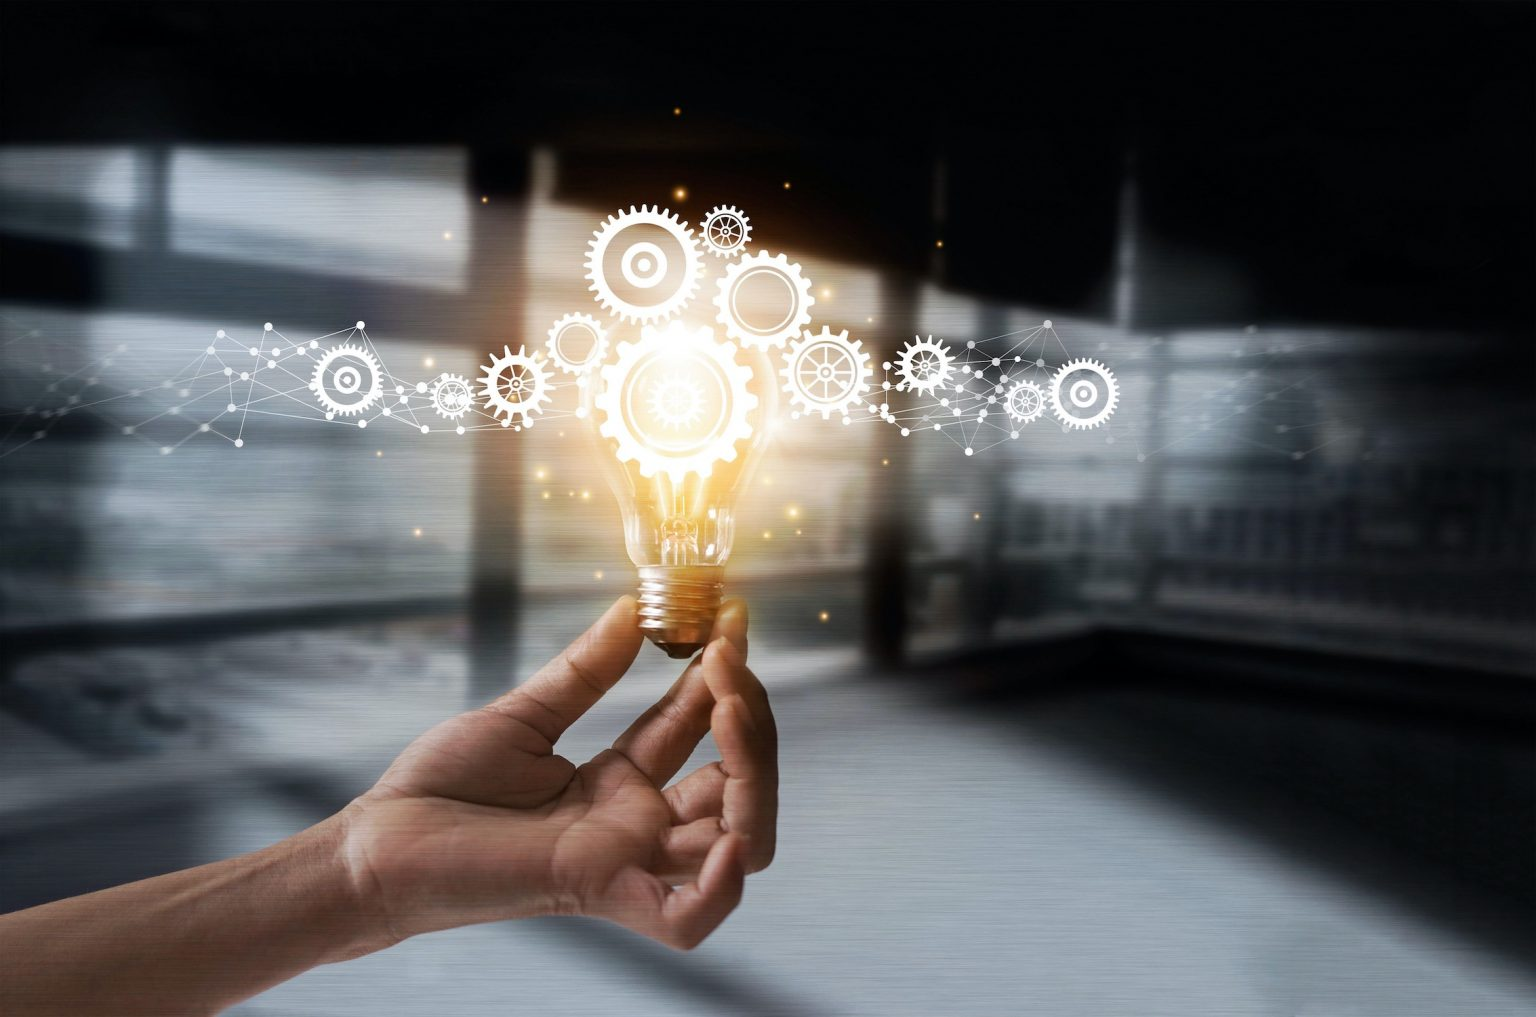 A hand holding a light bulb with cogs and gears on it symbolizing ideas and solutions